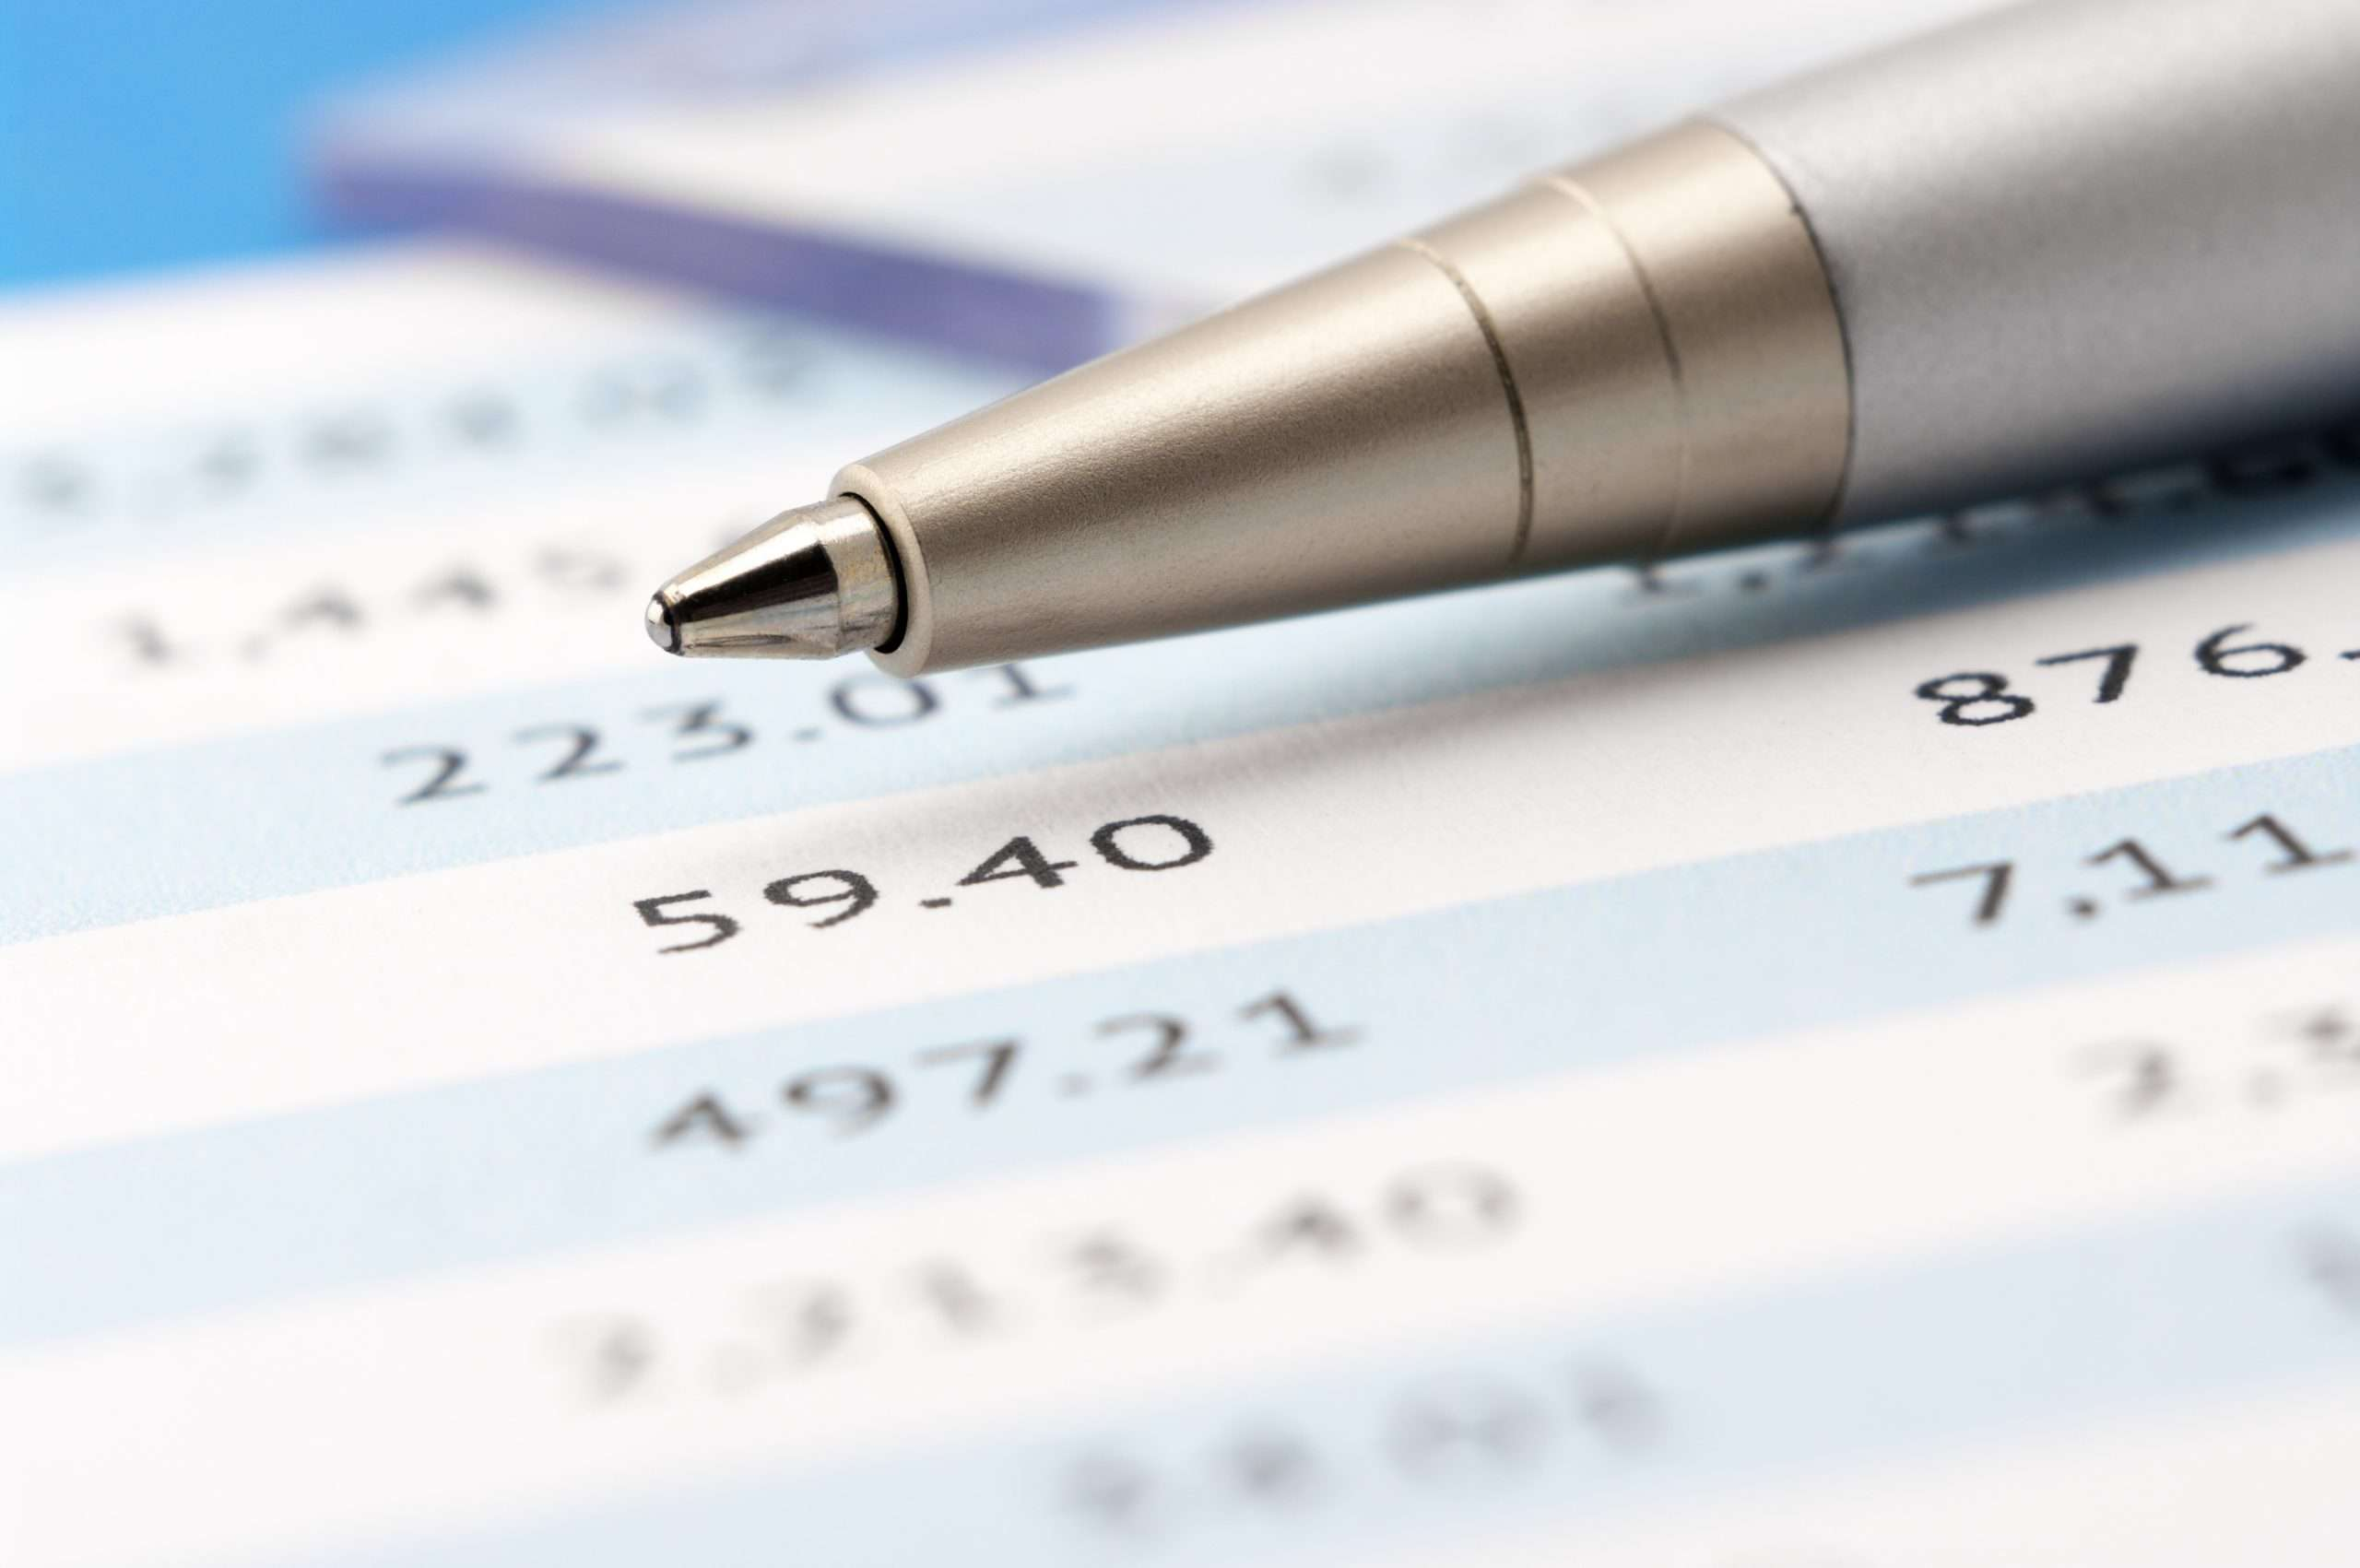 A pen lays atop a financial document used for evaluating the asking price of a business.